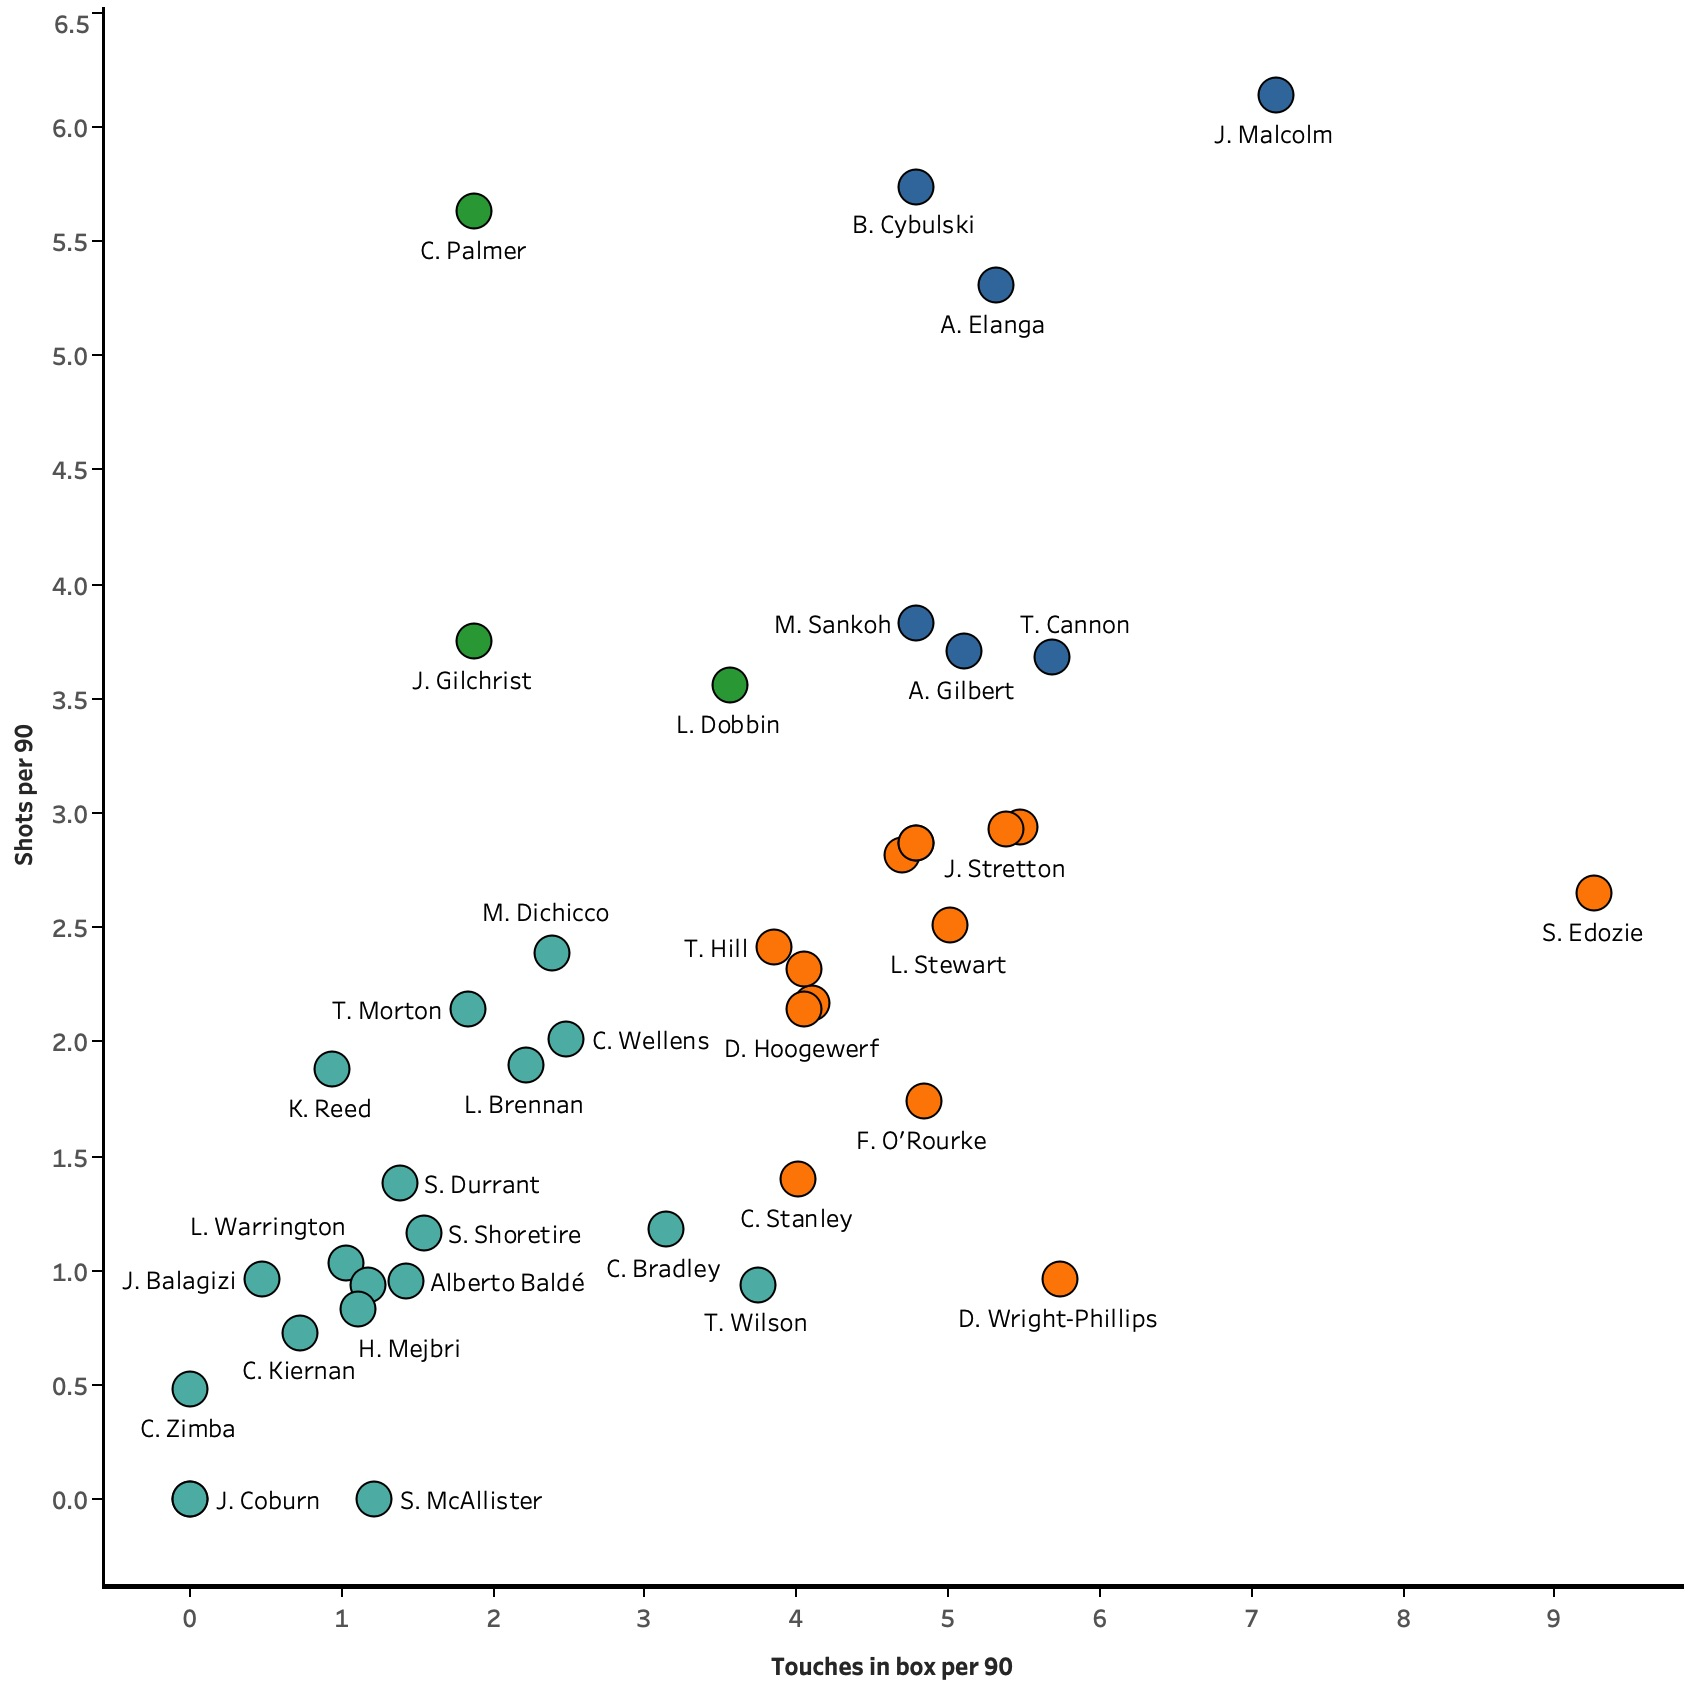 Finding talent in the youth leagues - data analysis statistics